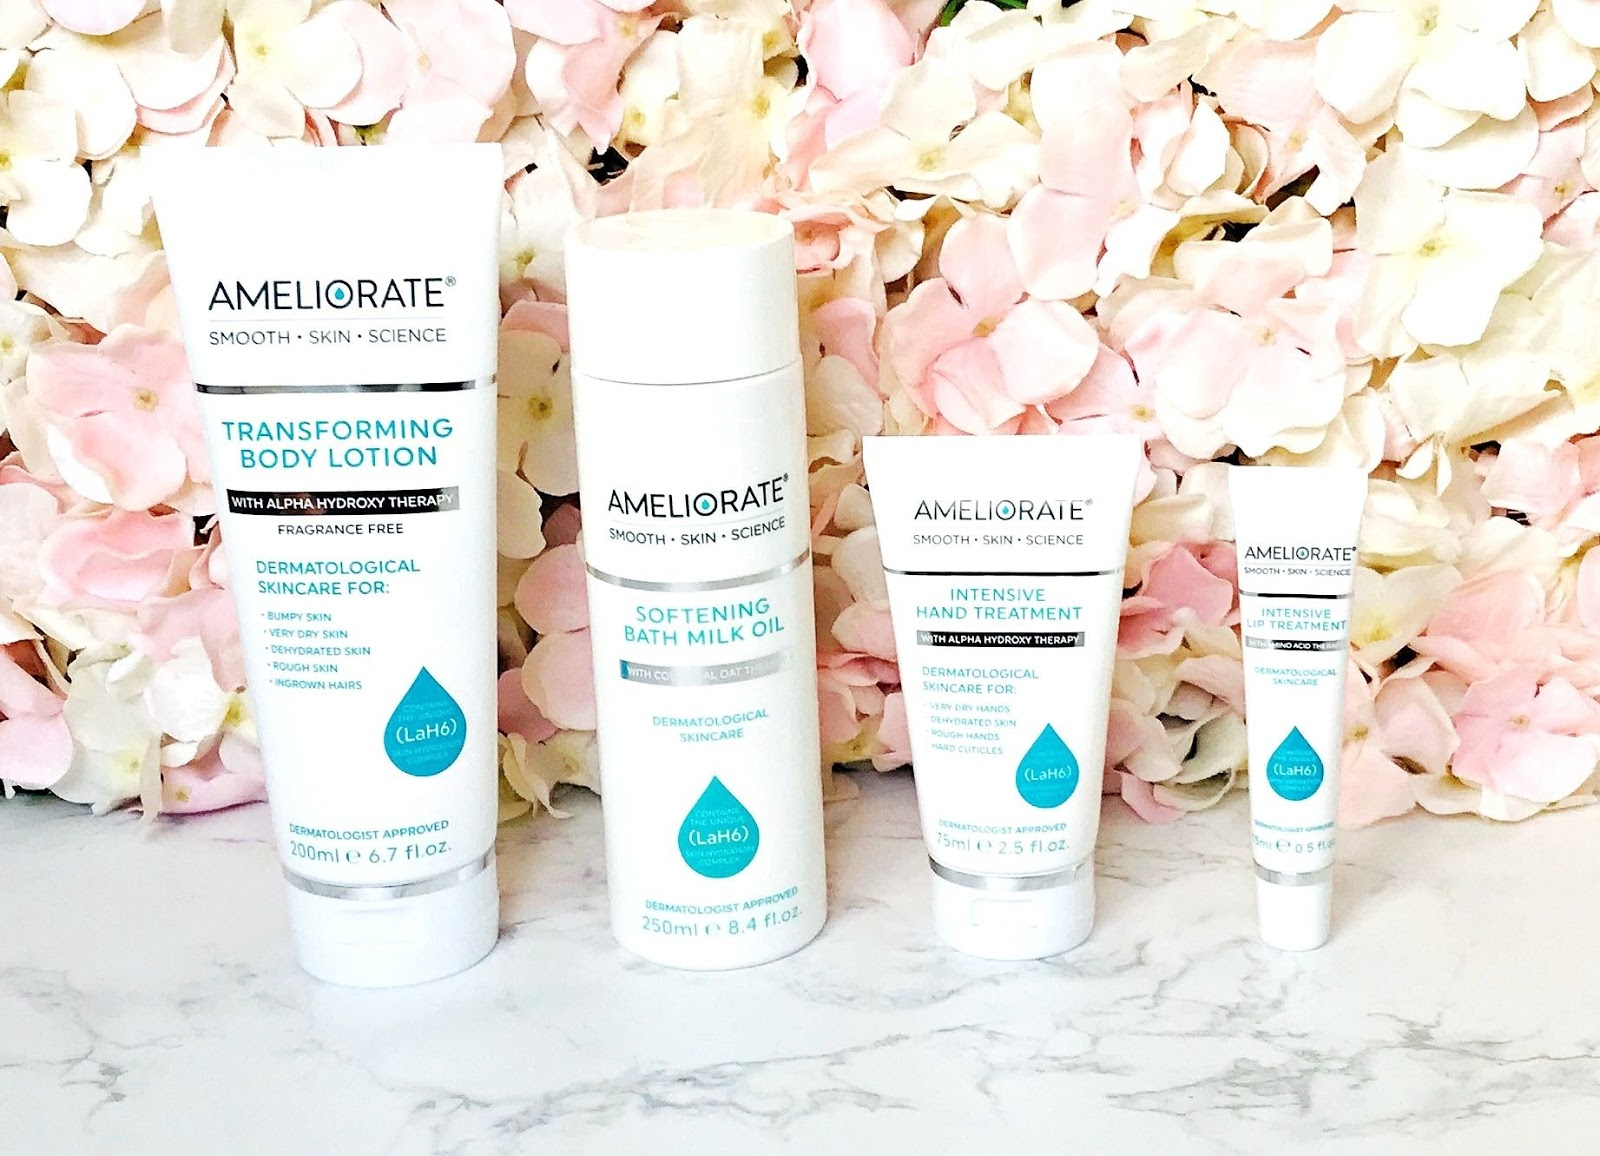 Want super soft limbs and lips? Ameliorate is the brand you need to know about